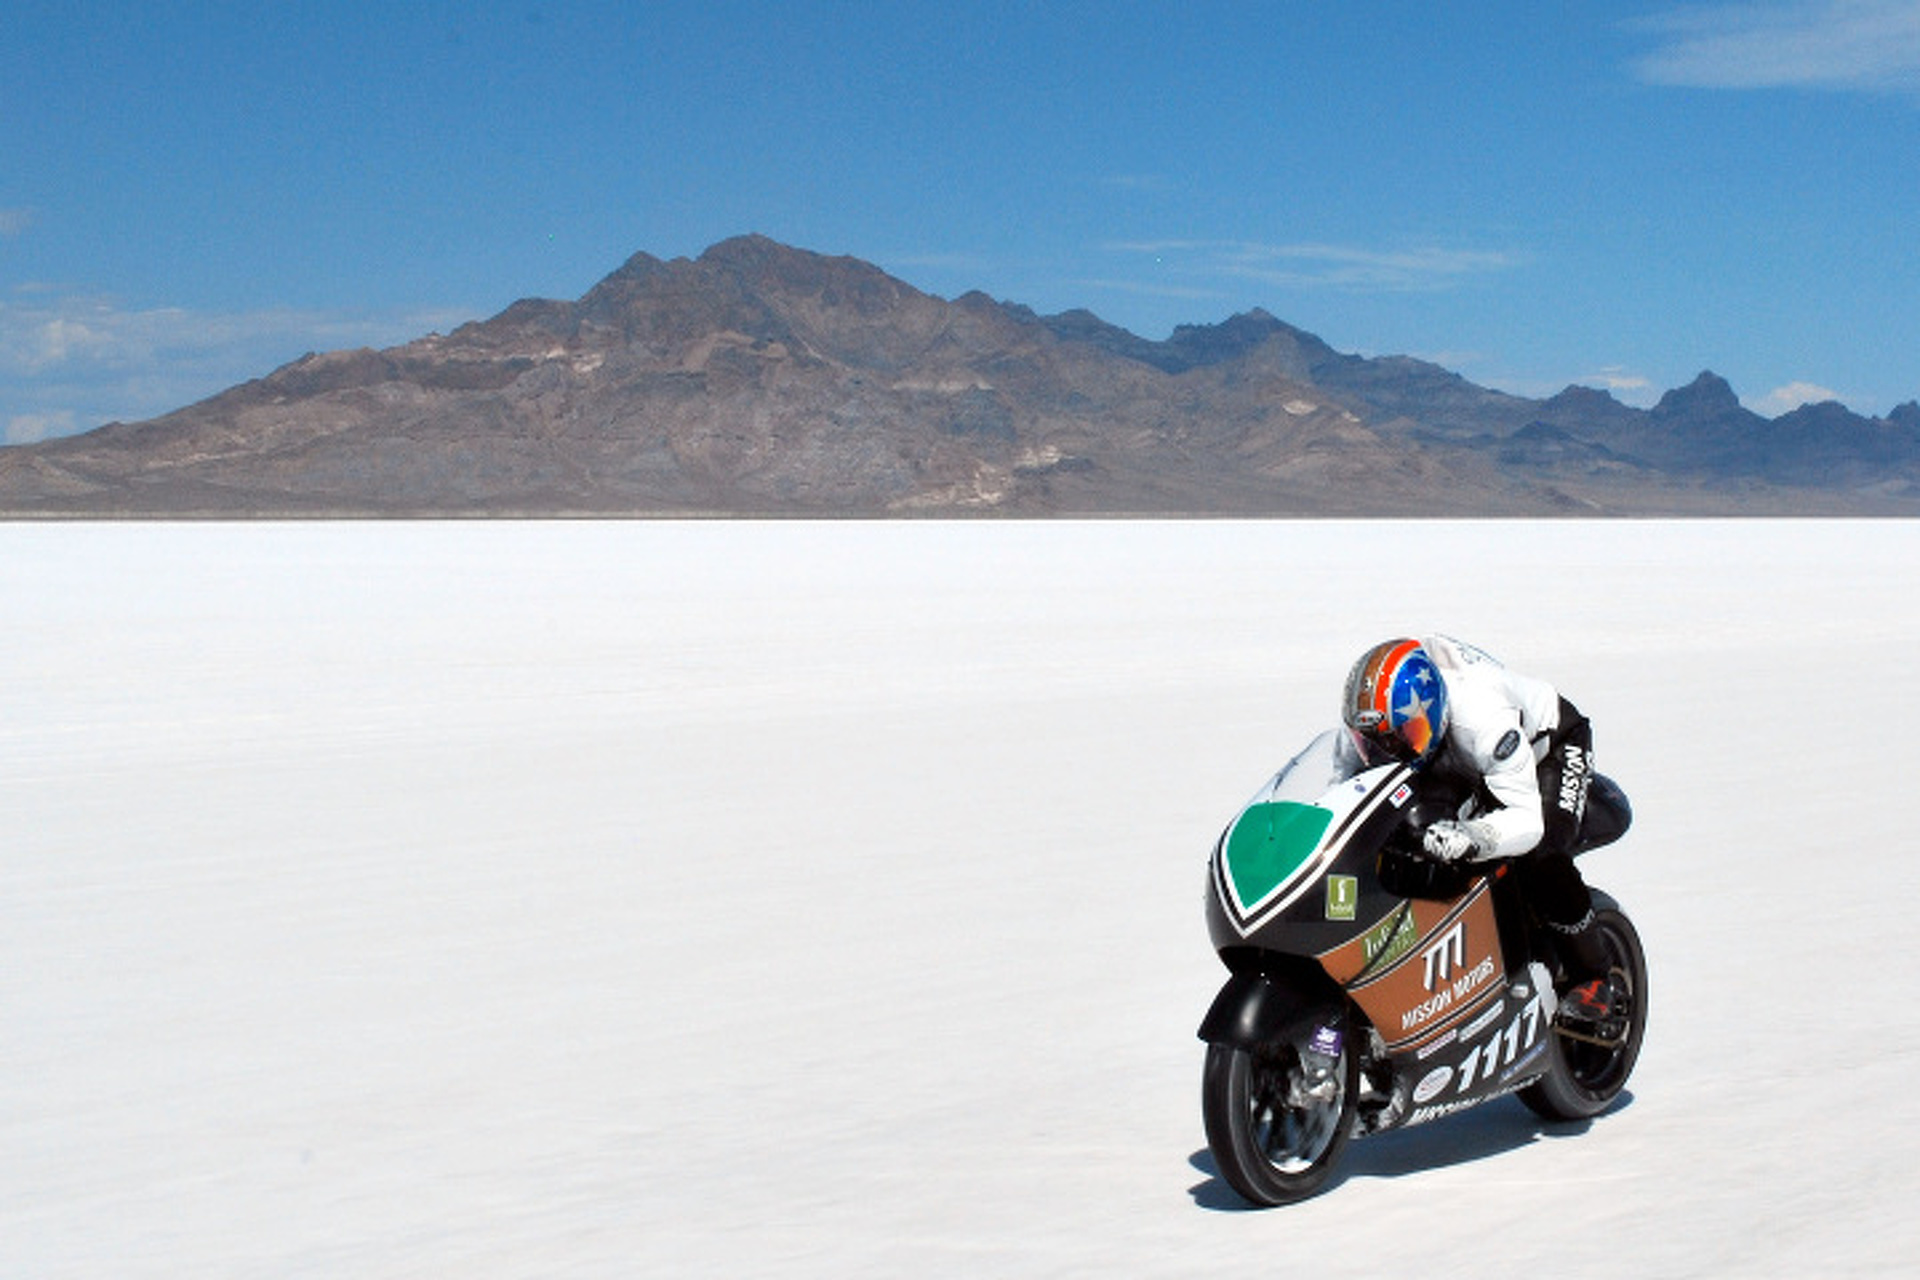 Bonneville Salt Flats to Receive Deliveries of...Salt?